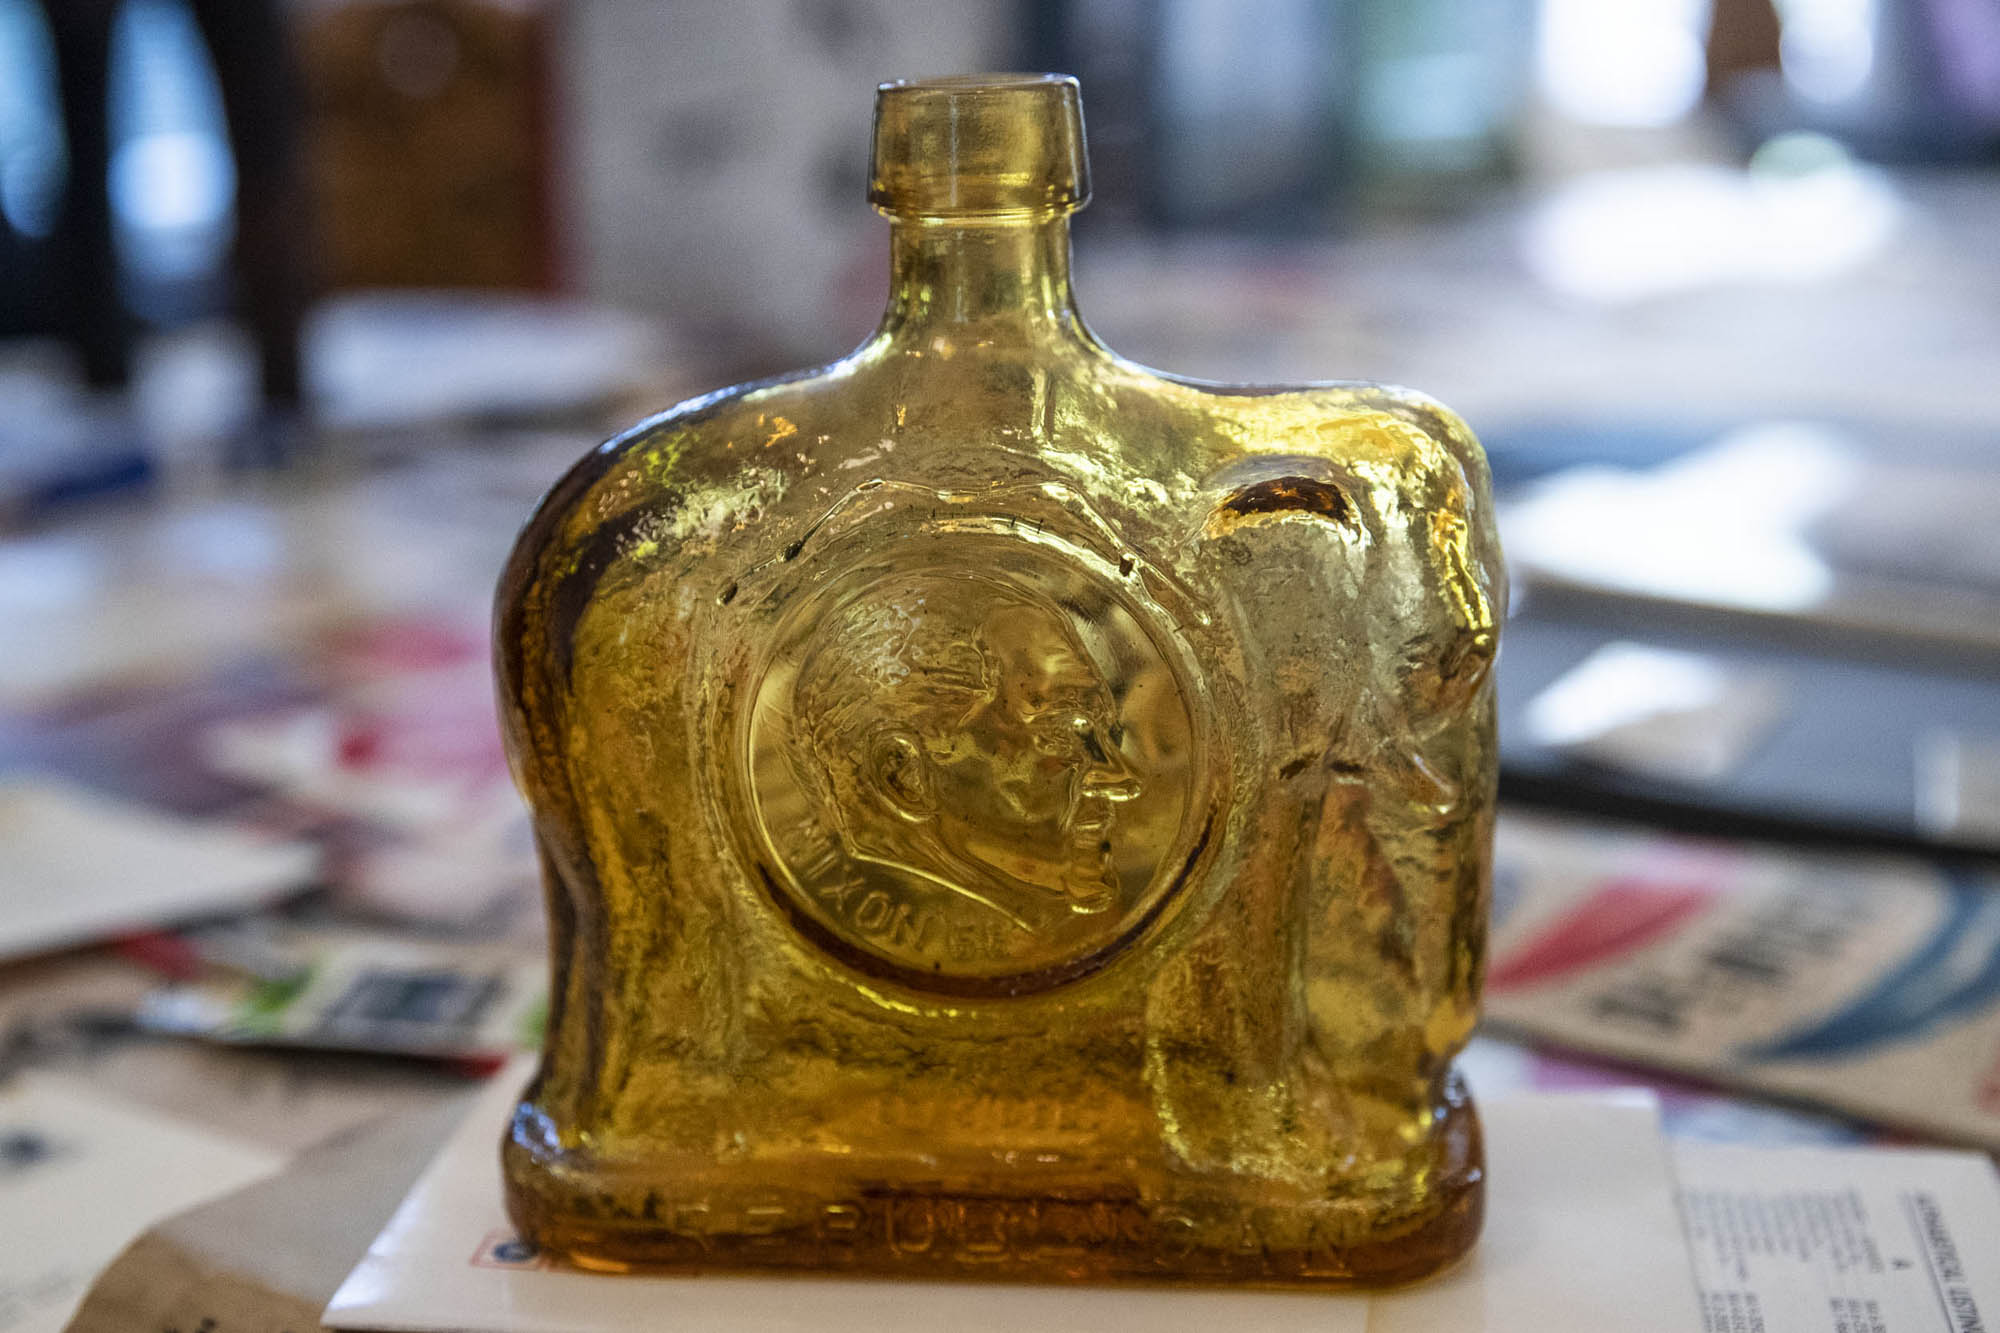 An elephant-shaped commemorative bottle, complete with the candidate's face, issued by the Nixon campaign.